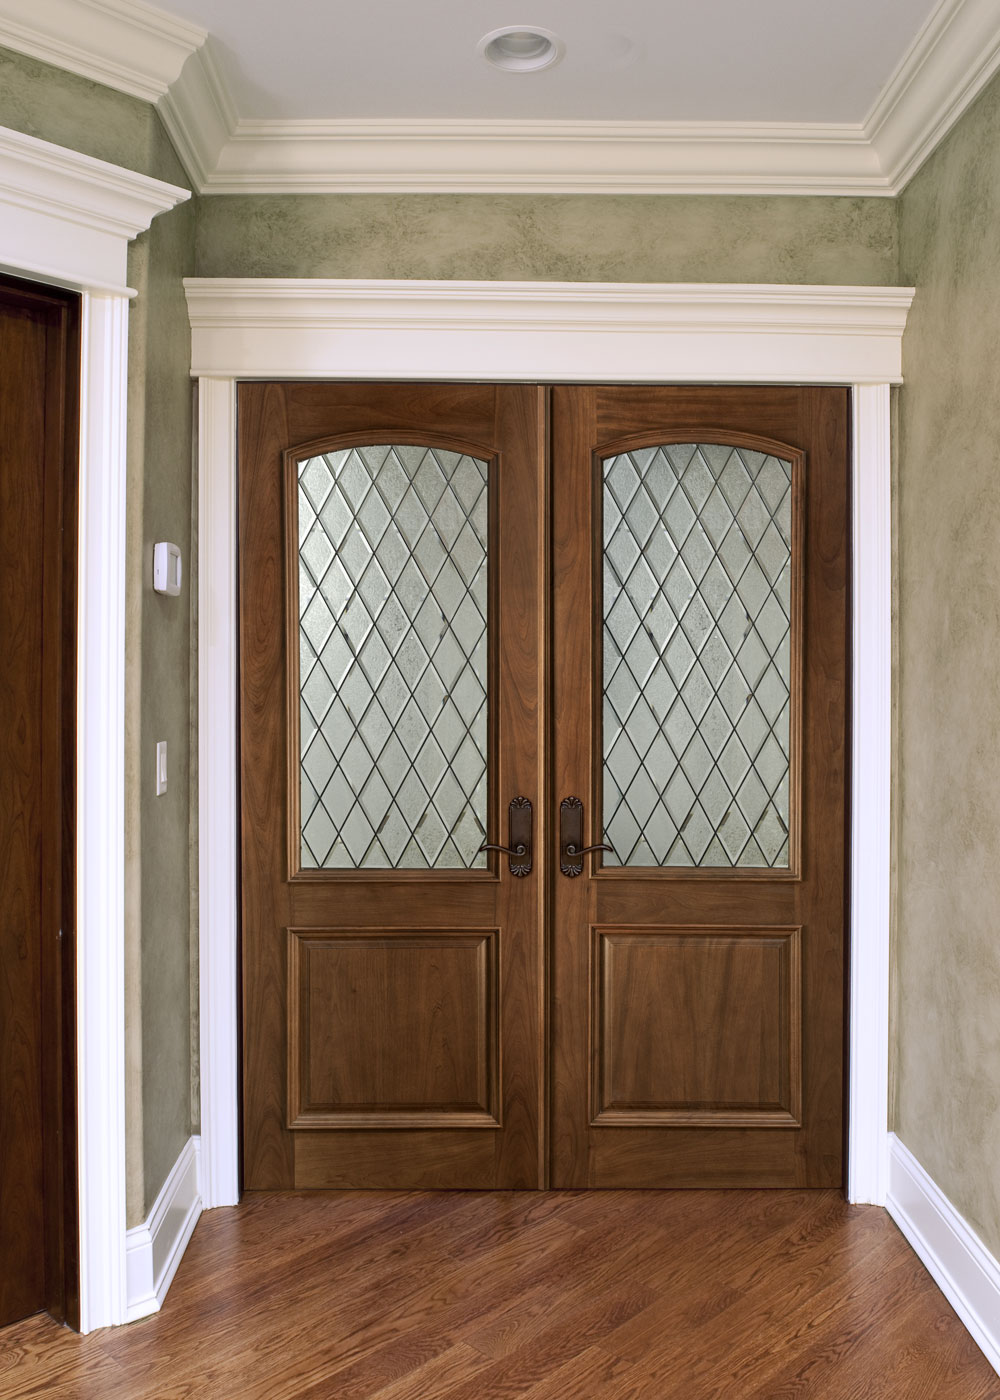 10 benefits of double door designs interior exterior ideas for Double door wooden door